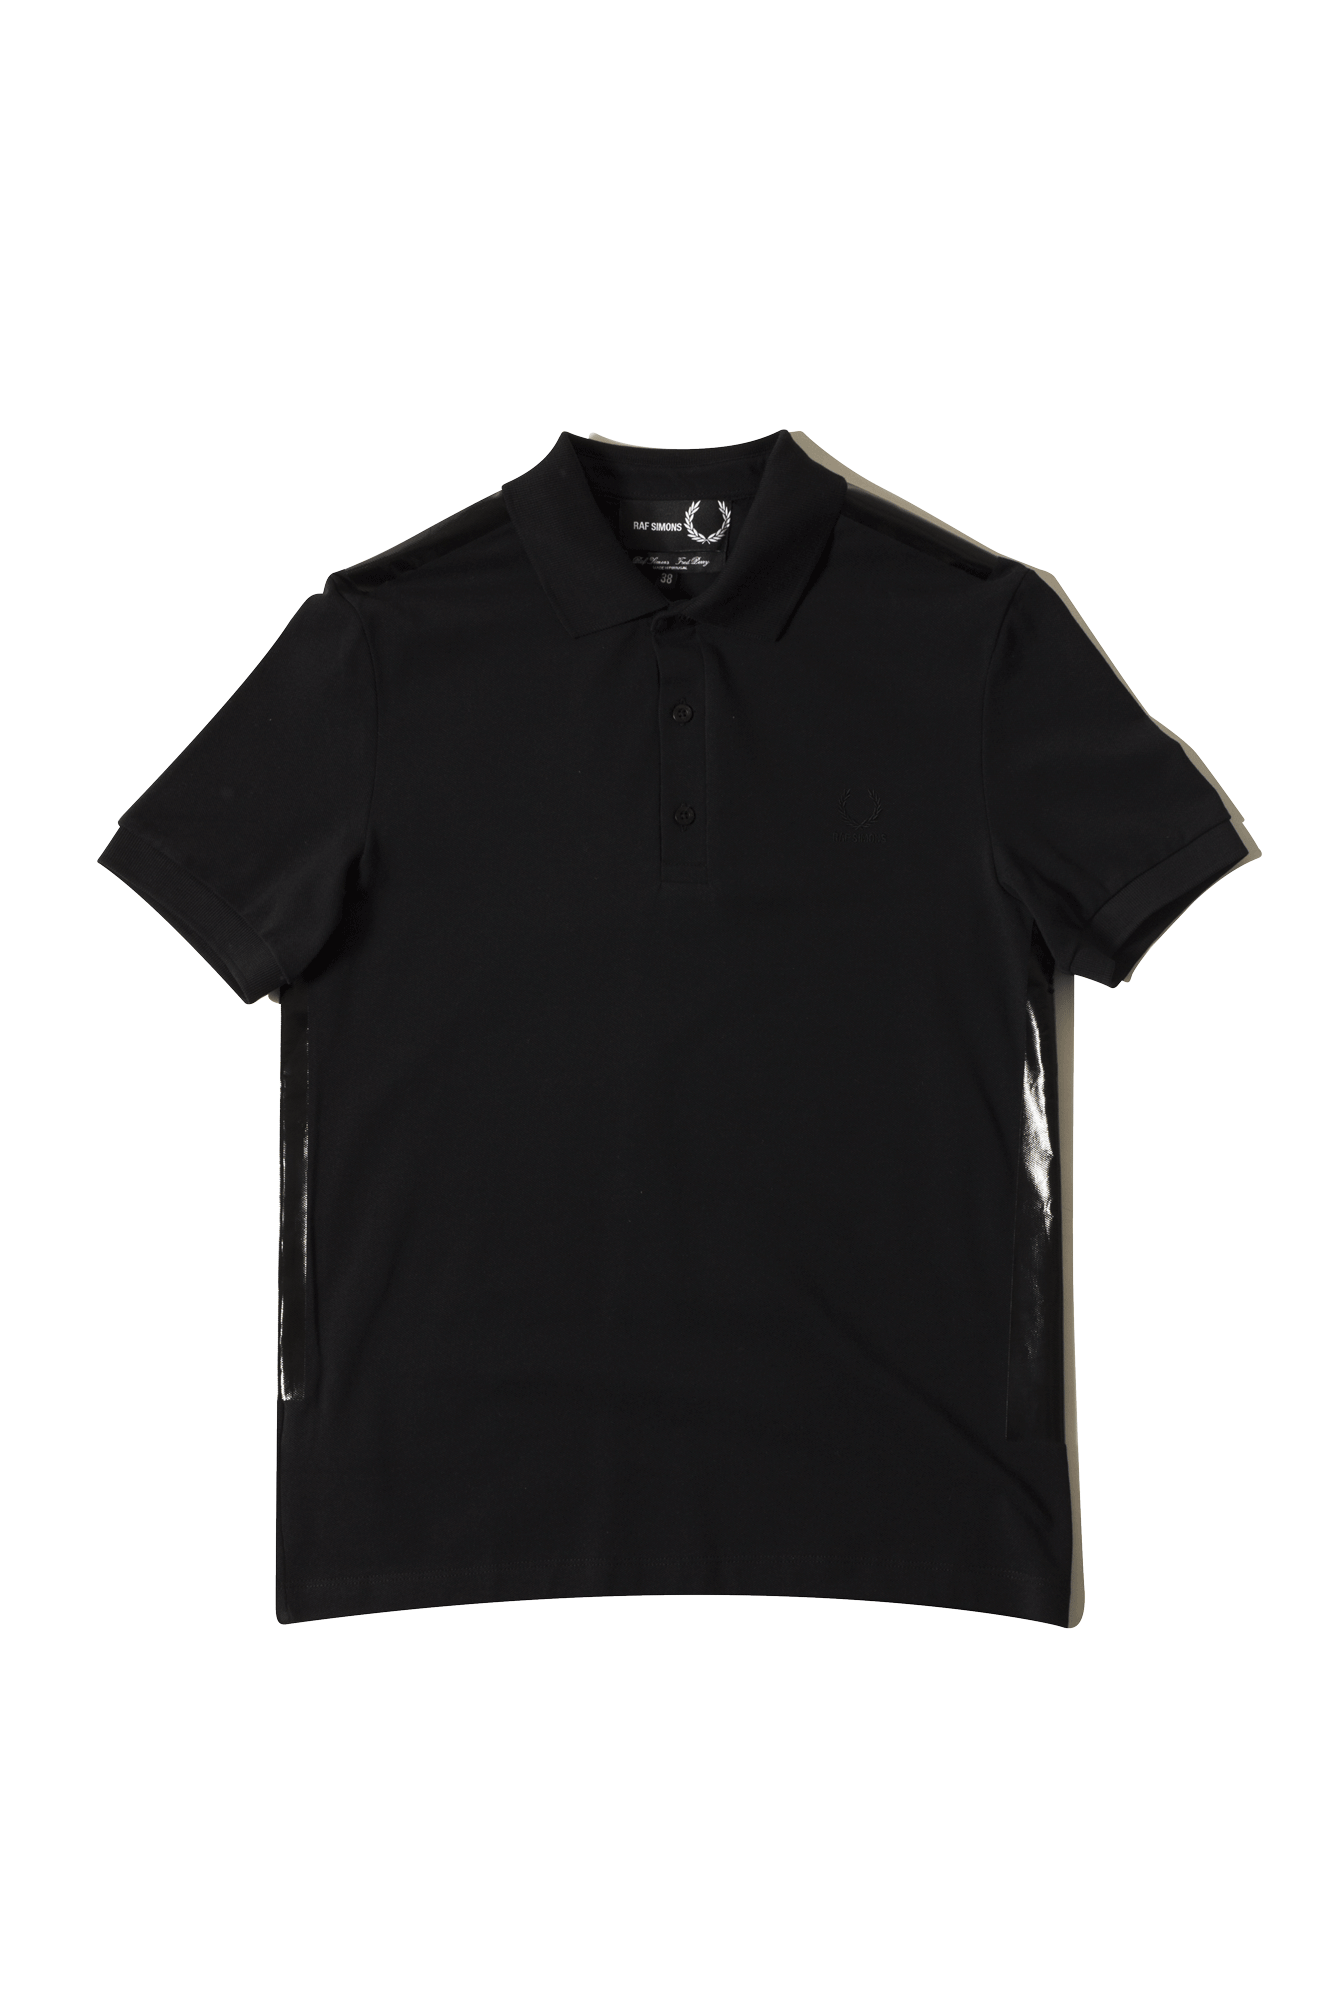 Fred Perry X Raf Simons Camicie Raf Simons Tape Detail Pk Shirt Nero SM3082#000#102#40 - One Block Down